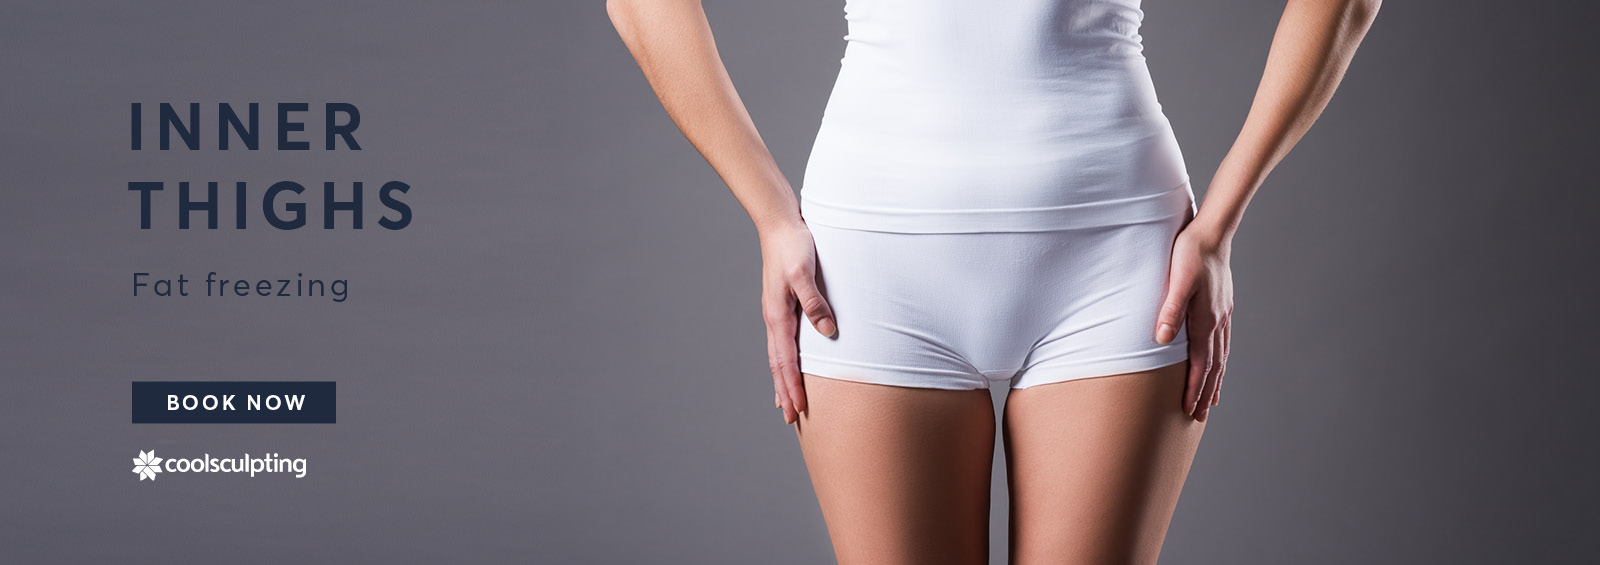 A banner image of lady wearing white shorts showing her inner thigh for Coolsculpting treatment